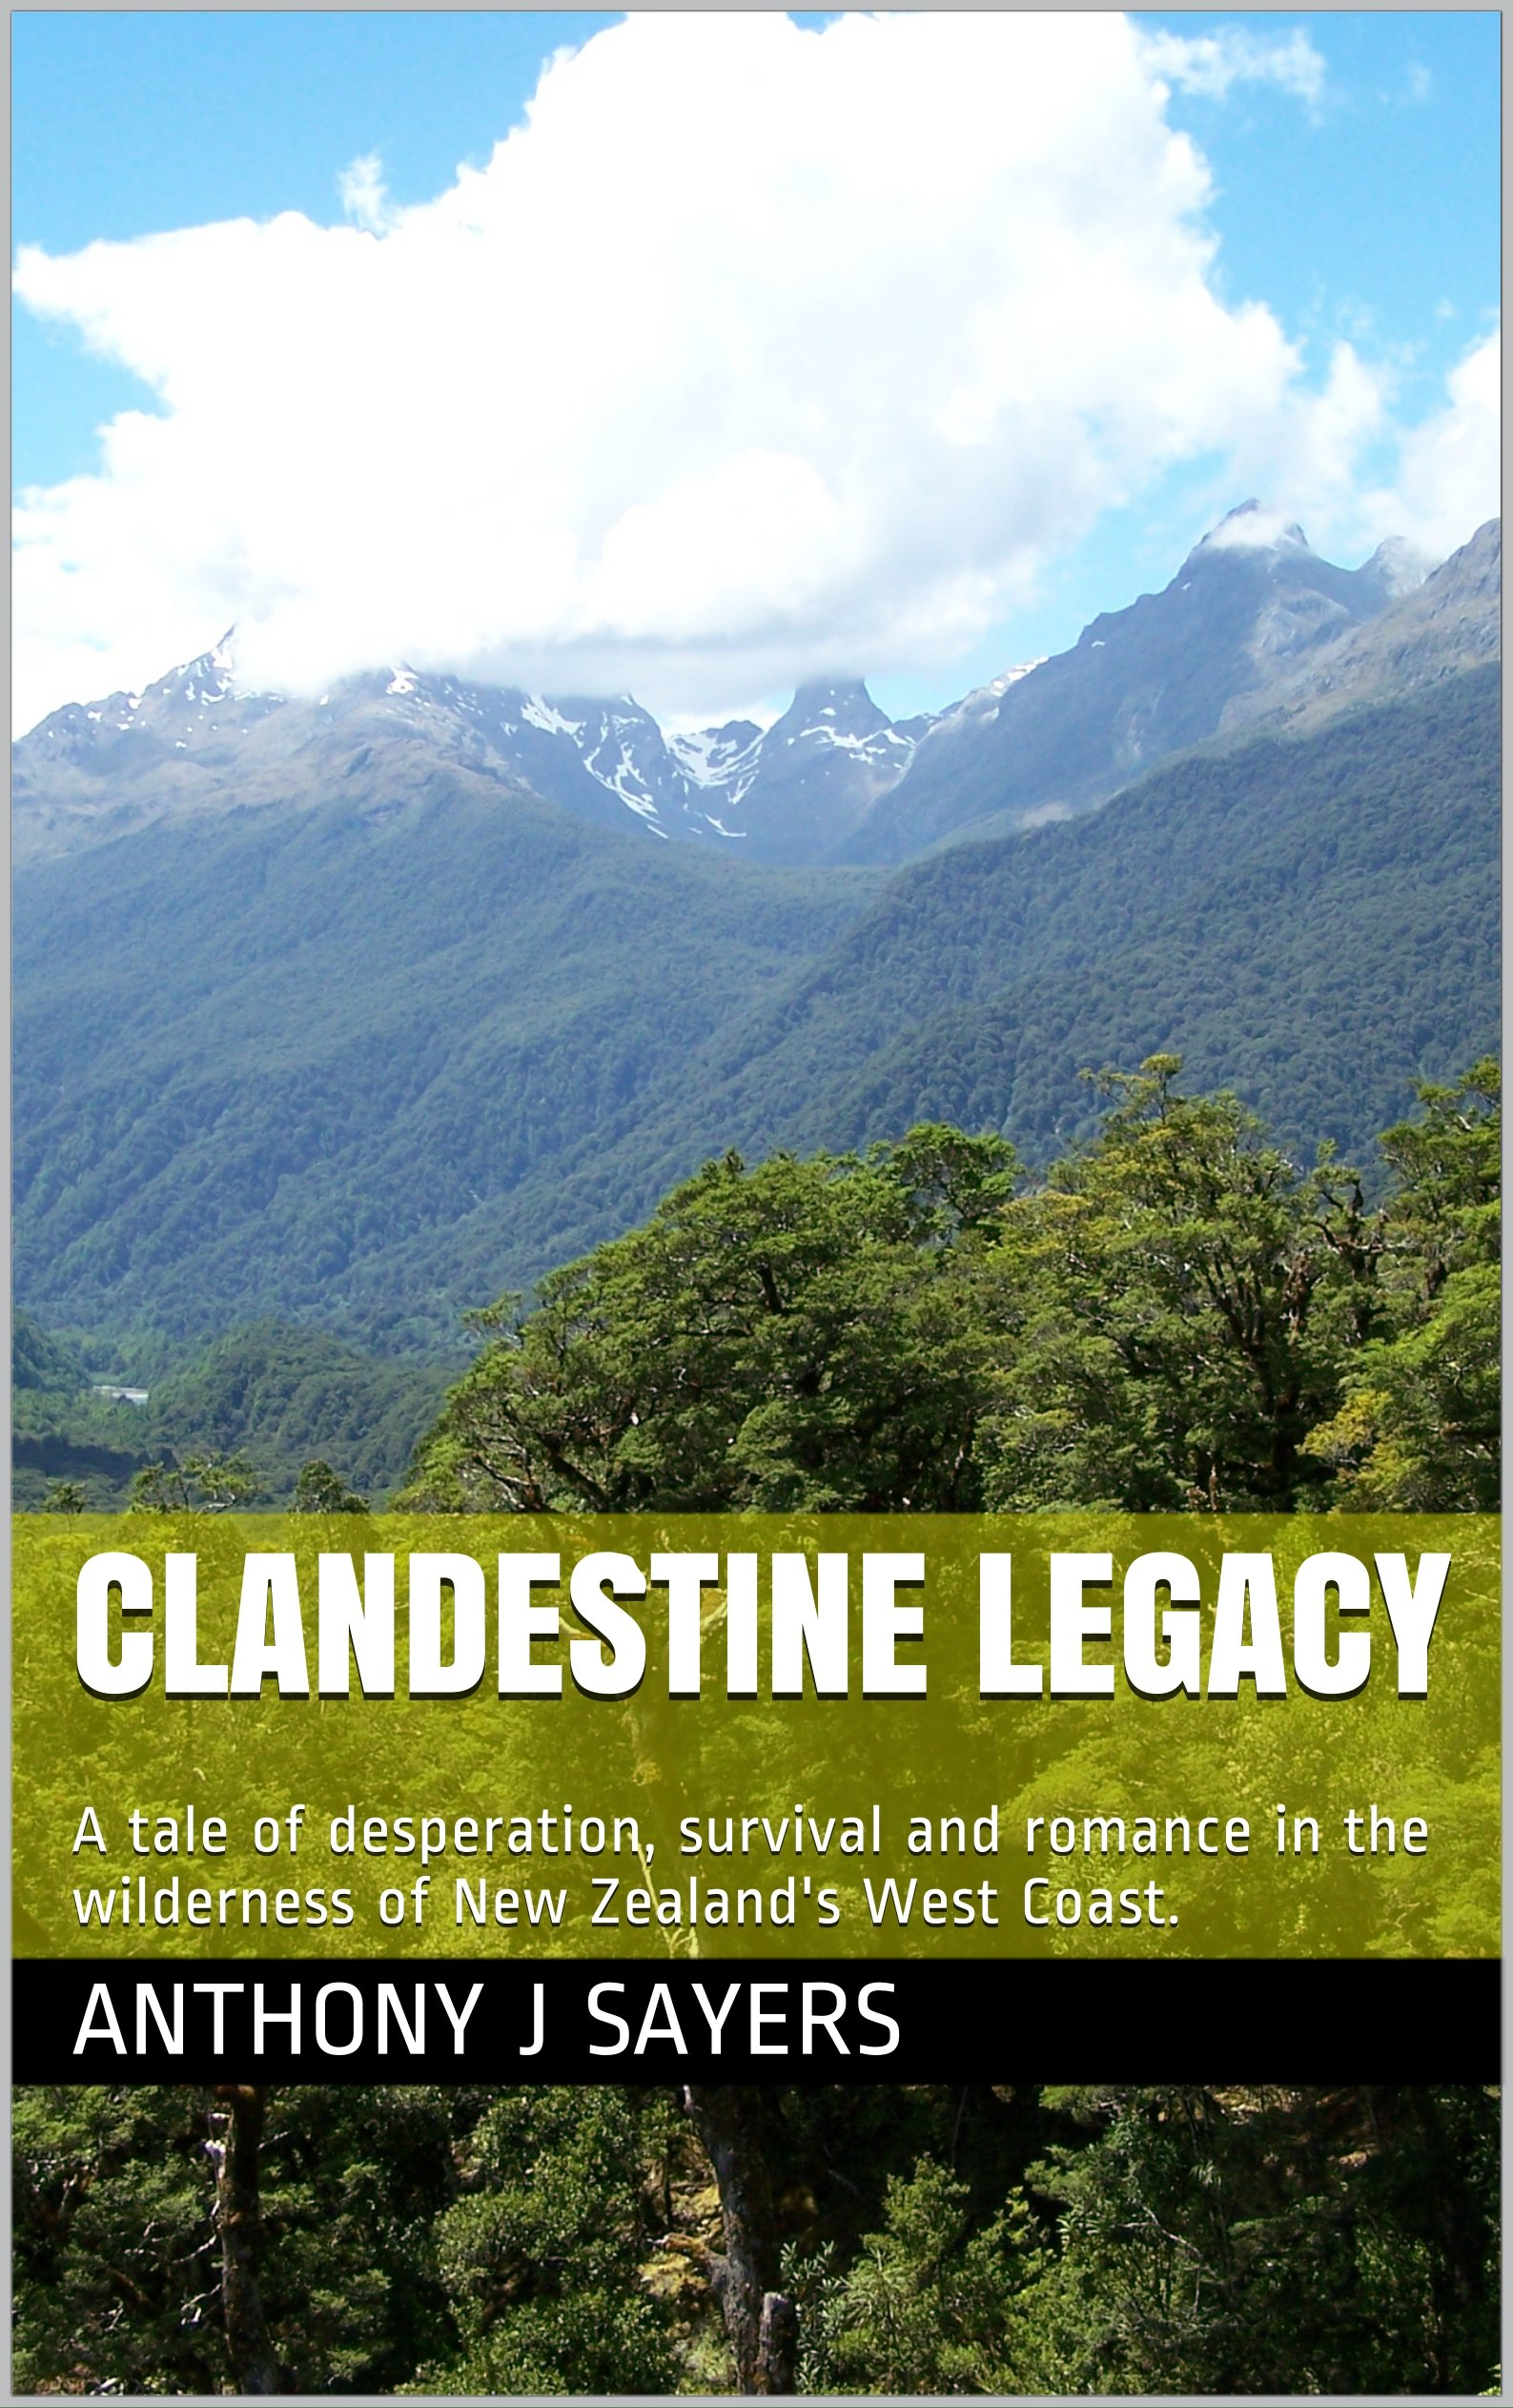 Clandestine Legacy: A tale of desperation, survival and romance in the wilderness of New Zealand's West Coast. por Anthony J Sayers